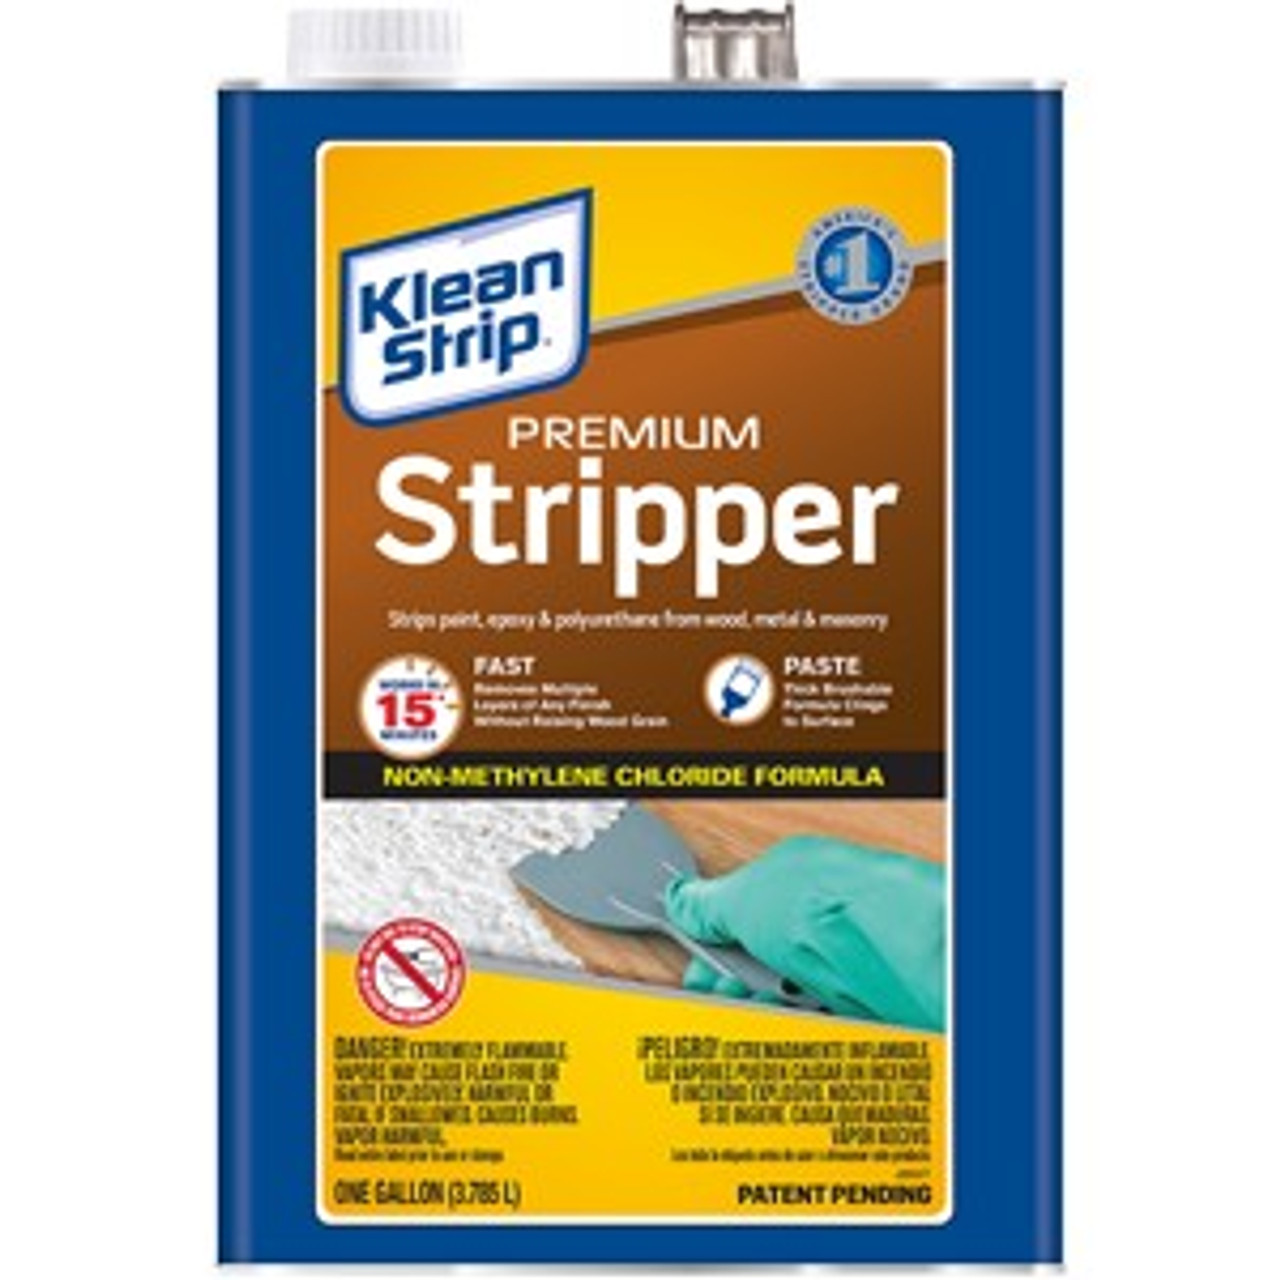 Klean Strip GKPS300SC Premium Stripper 1 Gal - 4ct. Case